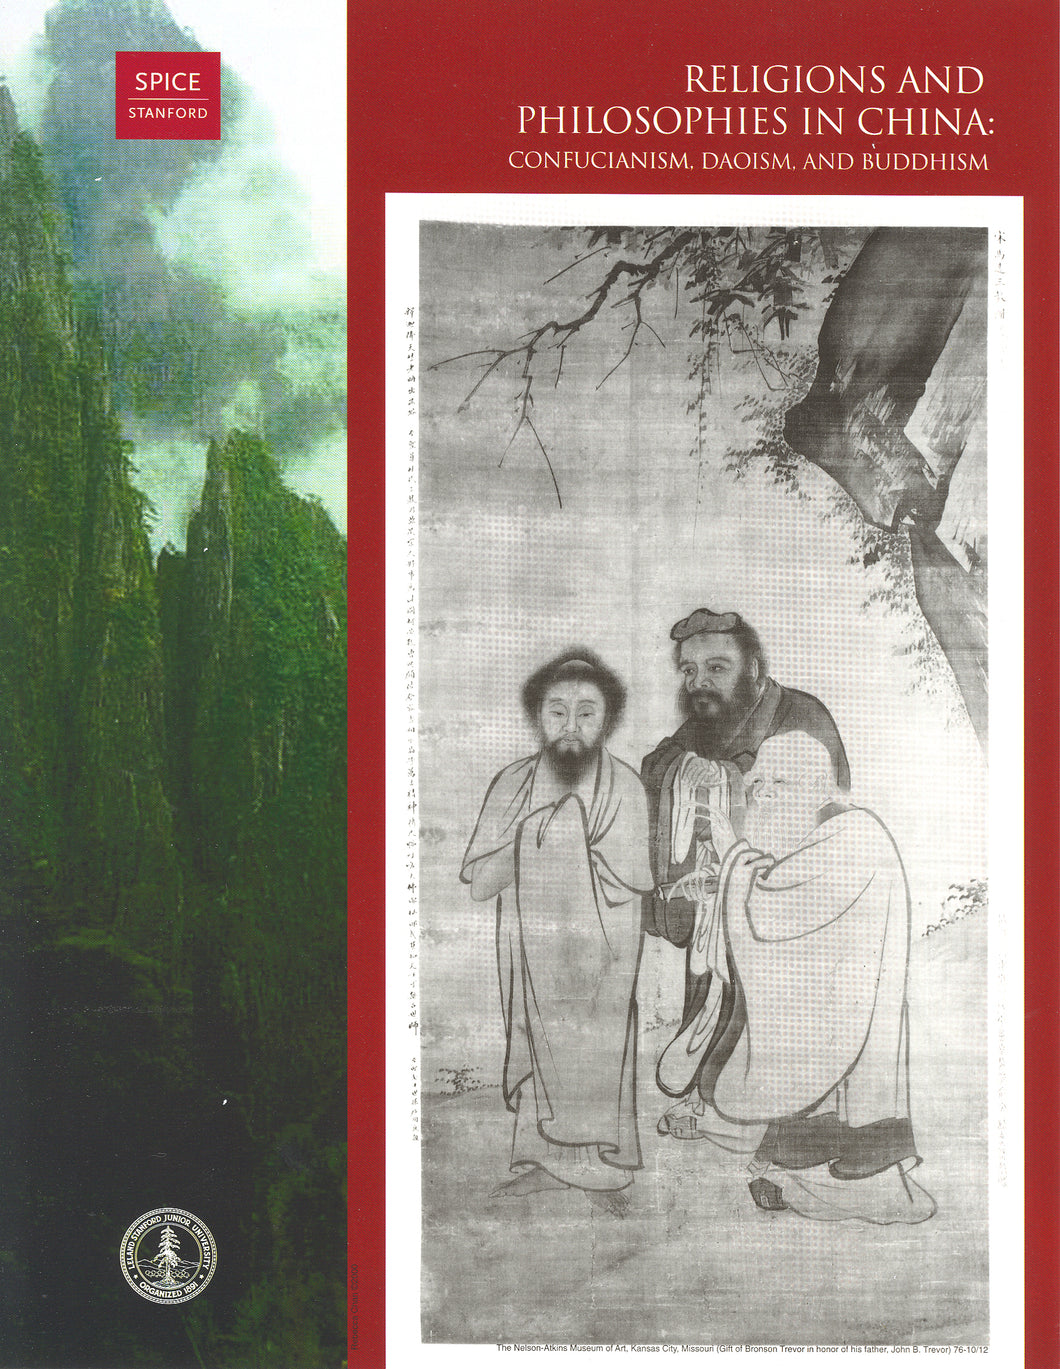 Religions and Philosophies in China: Confucianism, Daoism, and Buddhism